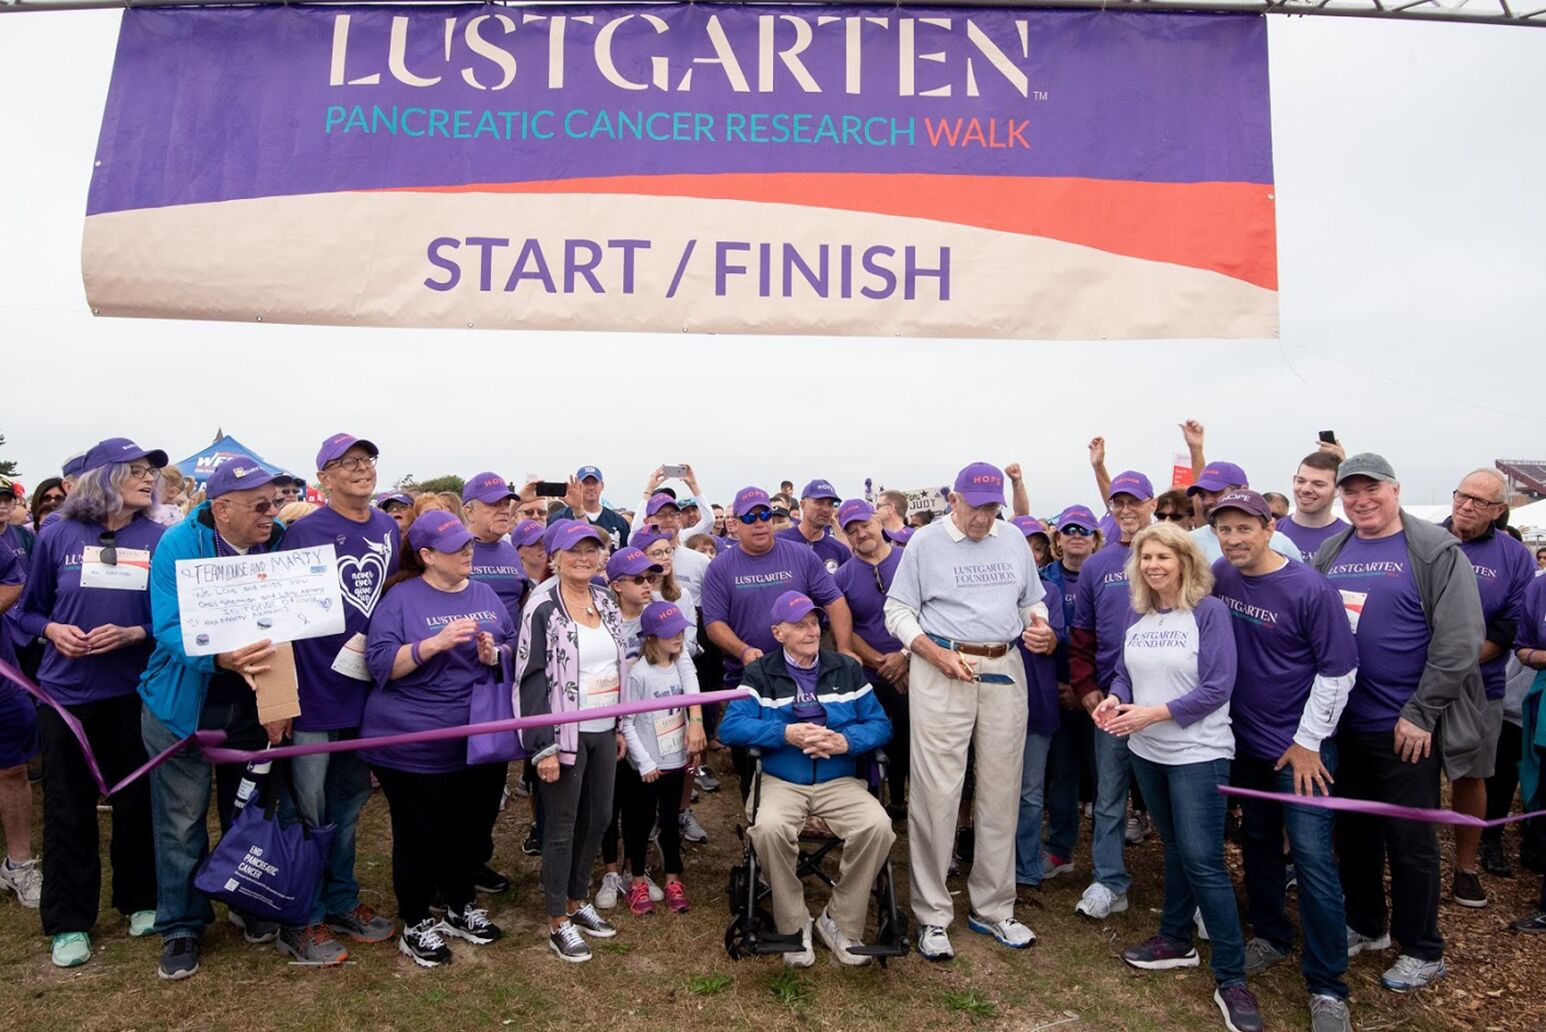 Participants at the start line for the Lustgarten Pancreatic Cancer Research Walk. The Northwell Health Cancer Institute is a presenting sponsor for five walks in the New York metropolitan area this year.